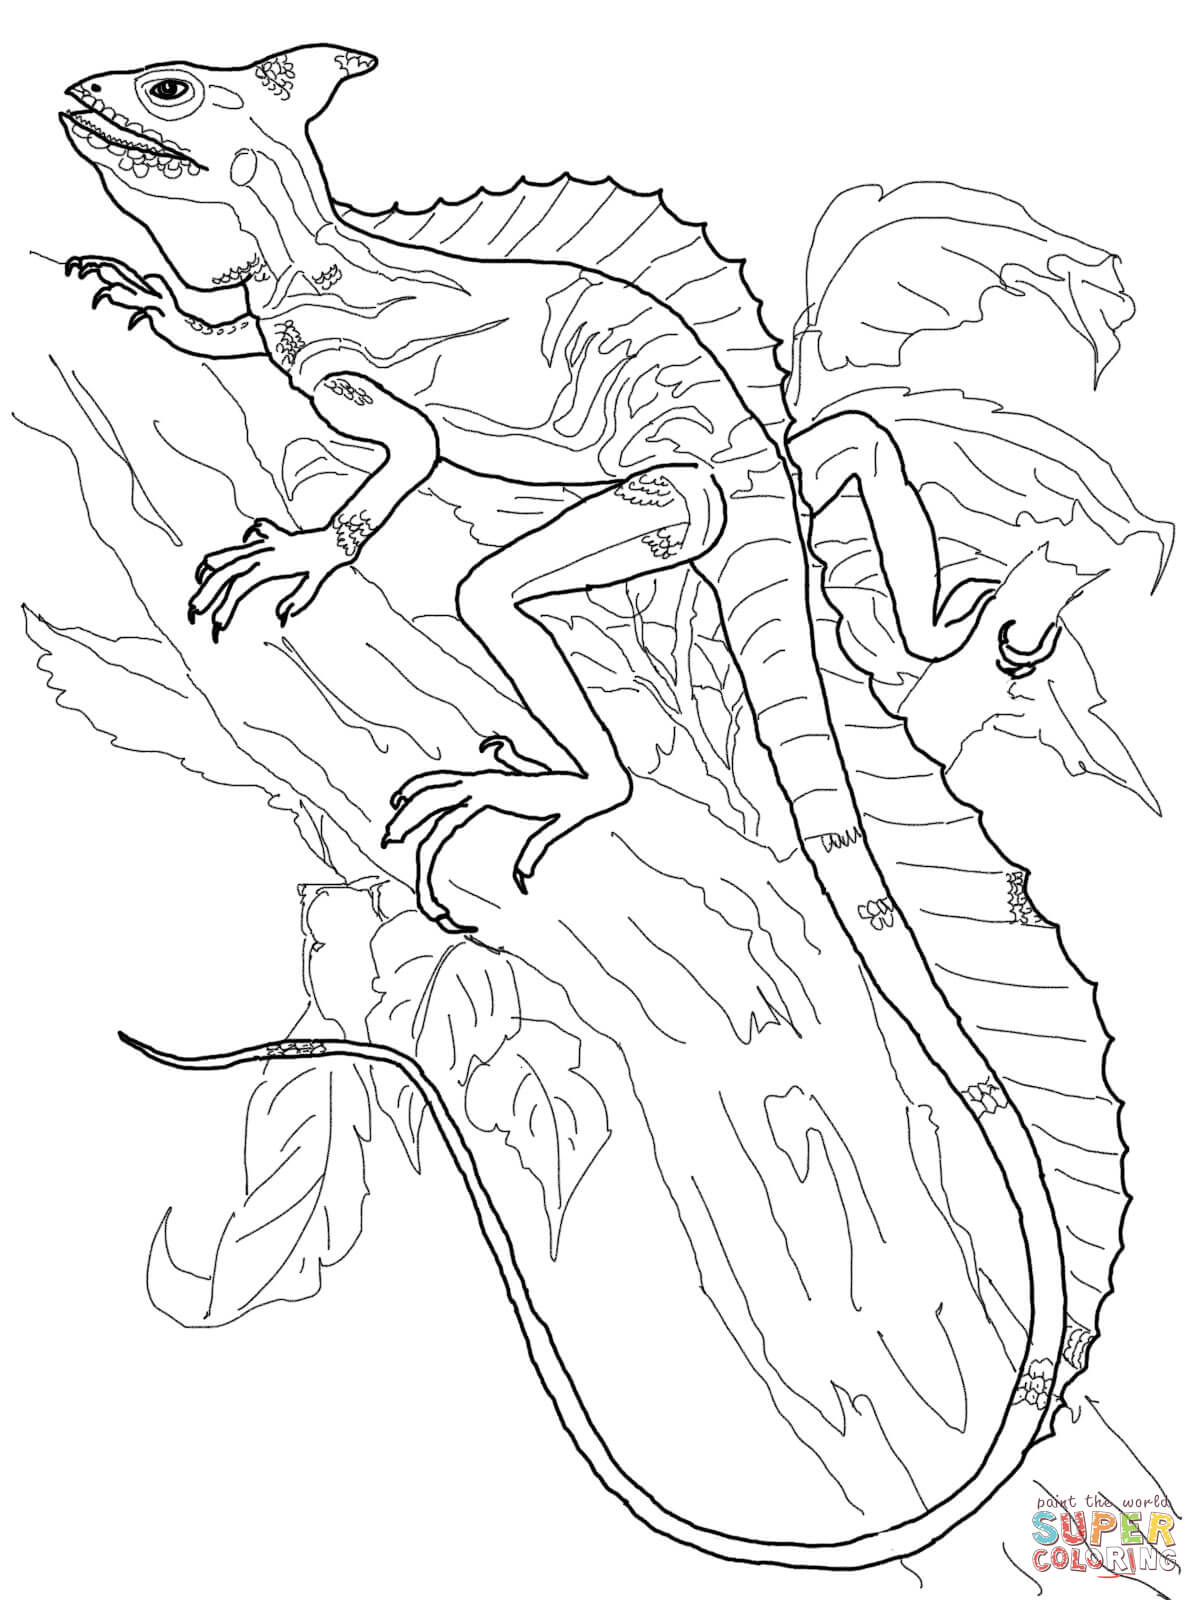 picture of a lizard to colour in projects design reptile coloring pages lizard free lizard to in colour of a picture